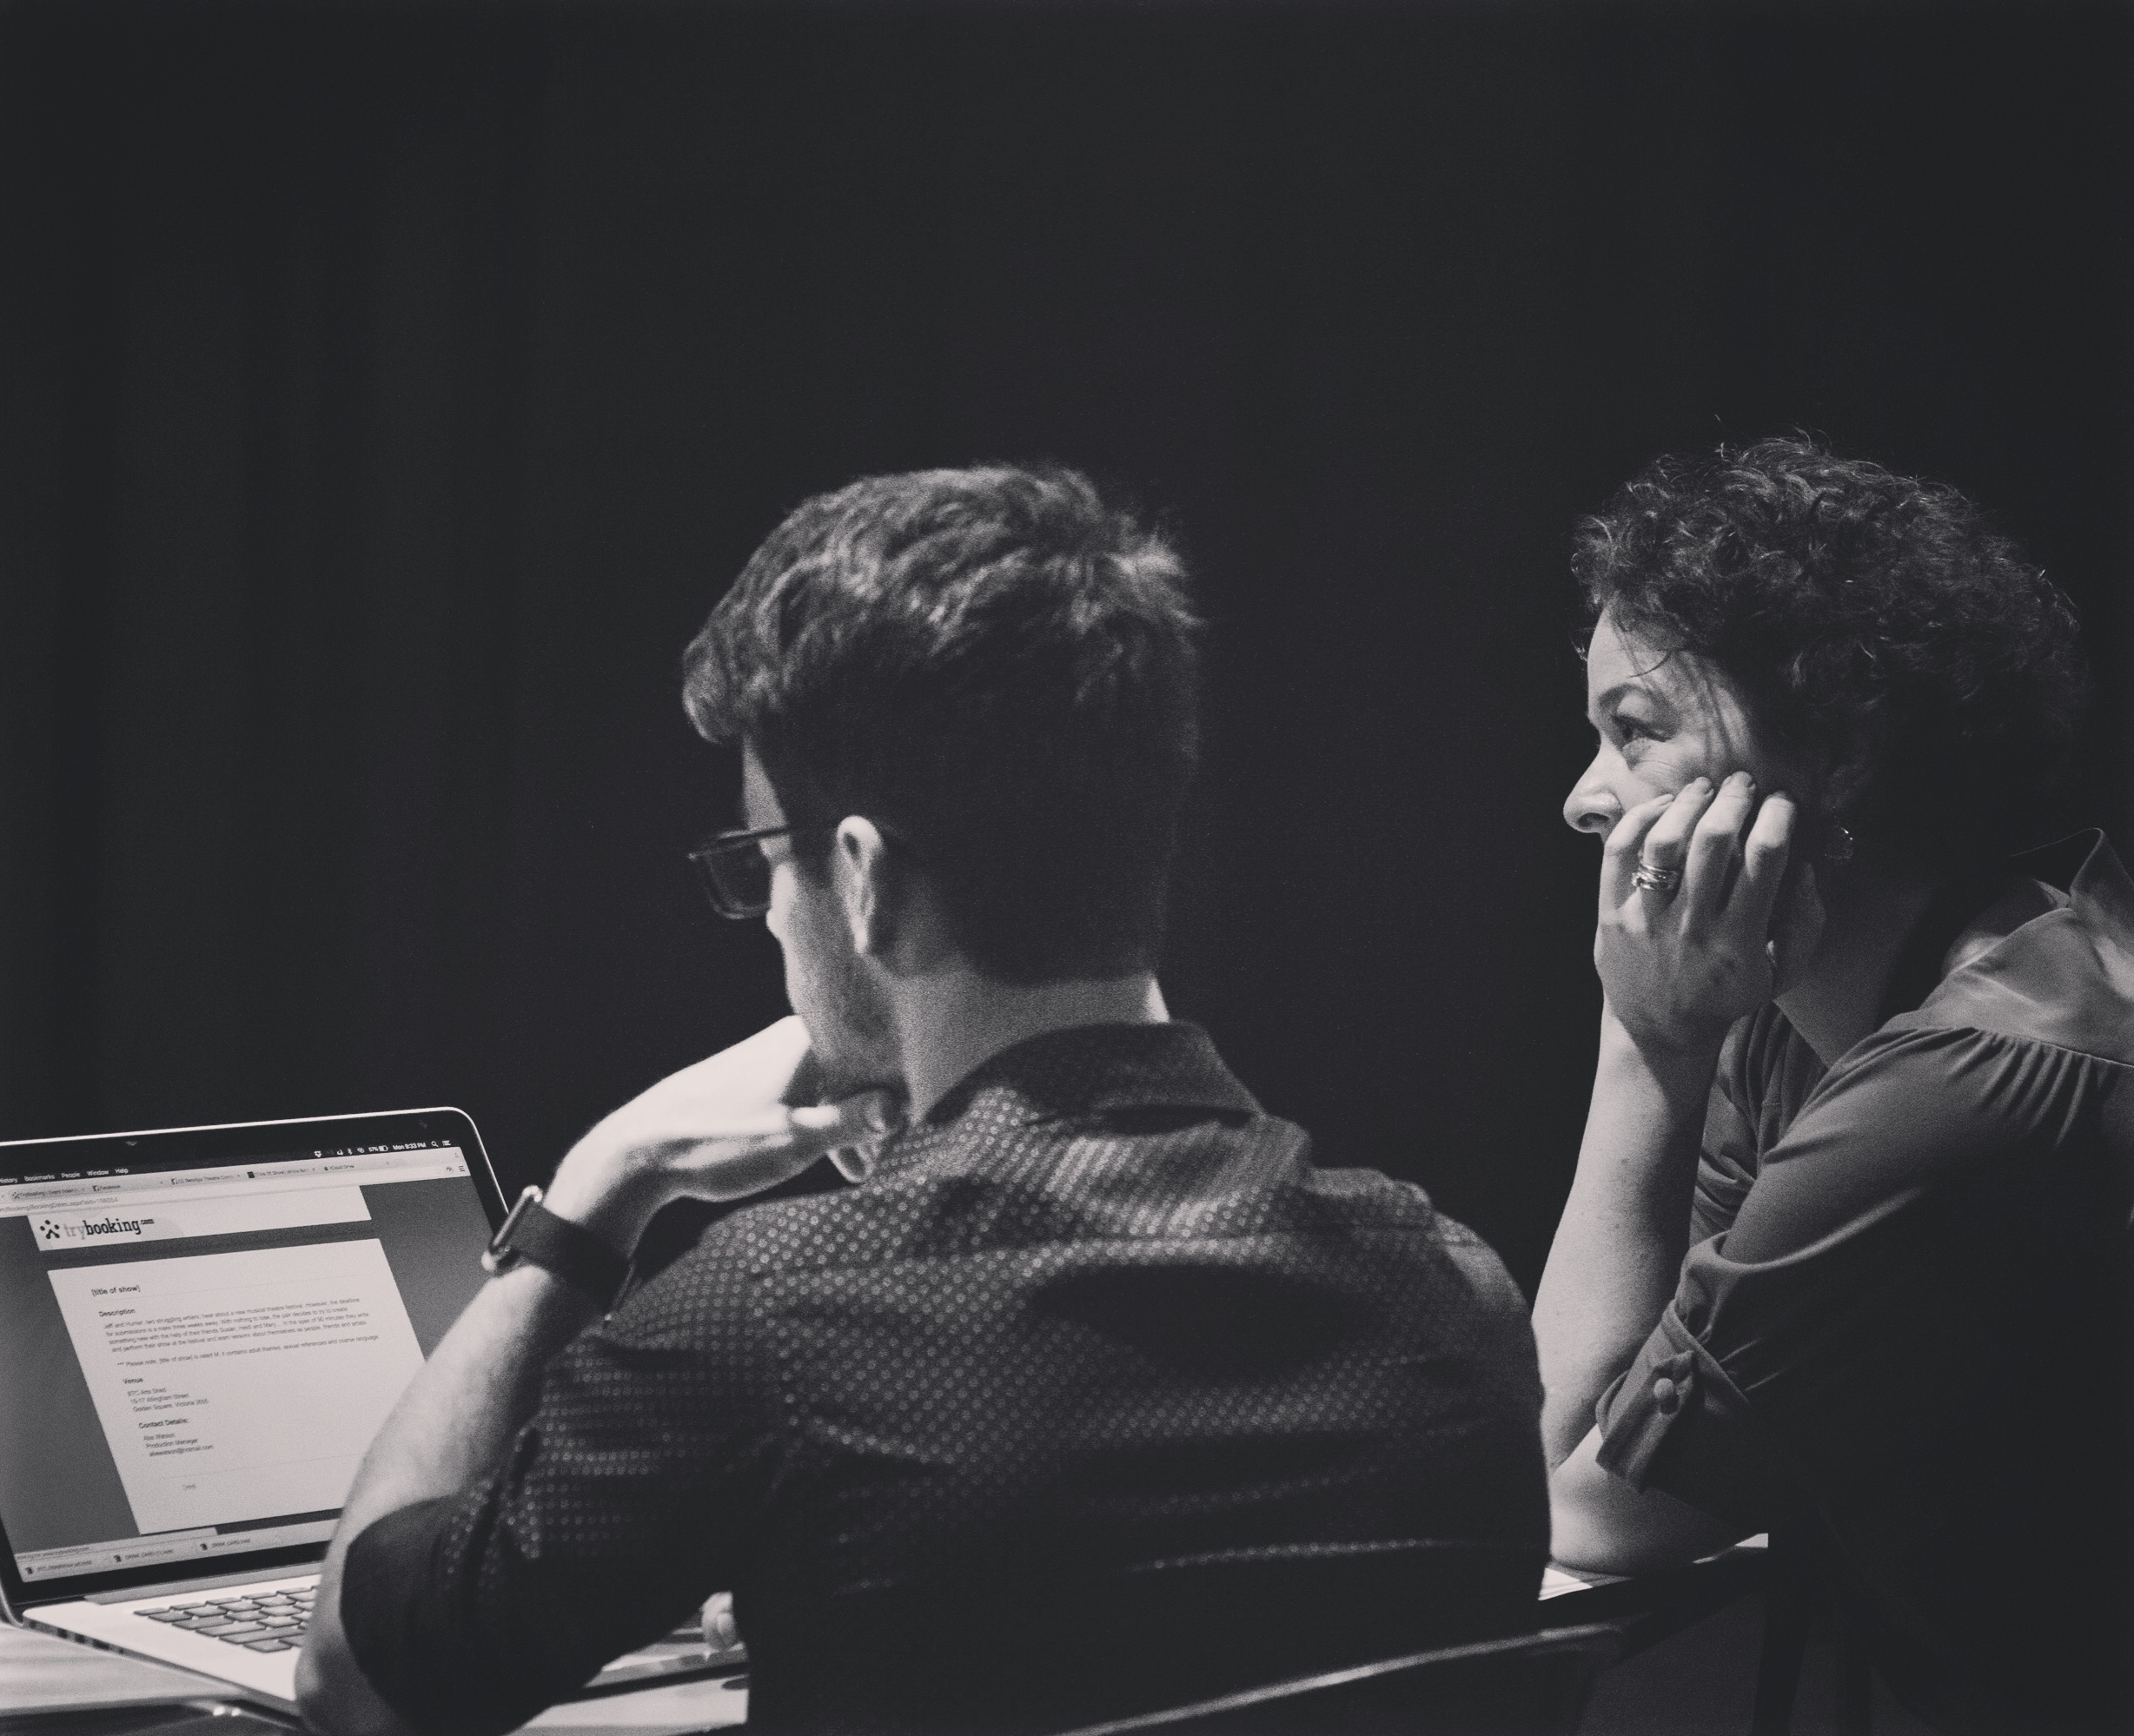 With SM Kristen Beever, rehearsals for [title of show] 2015